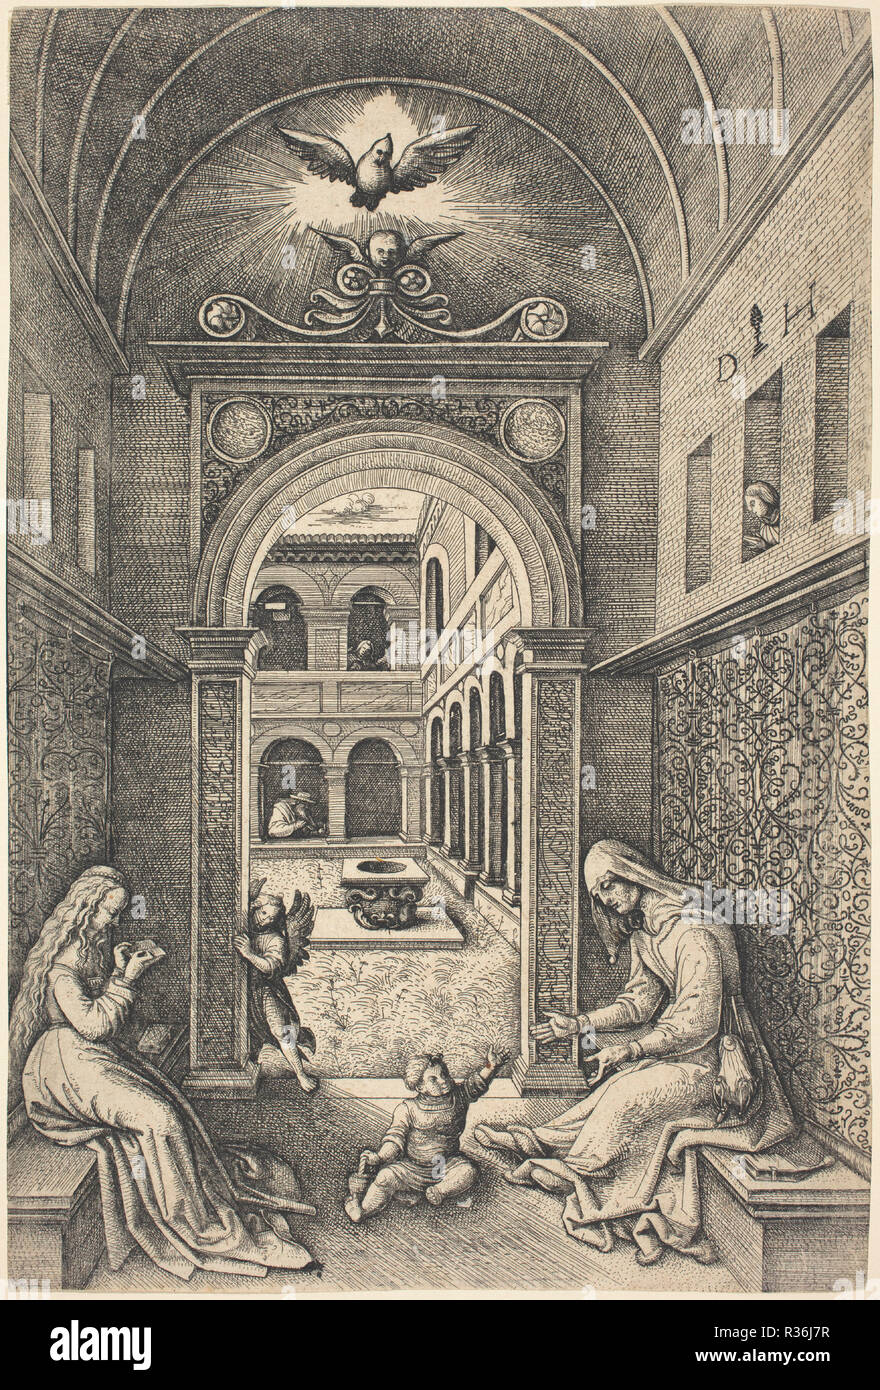 The Virgin and Child with Saint Anne by a Portal. Dimensions: sheet (trimmed within plate mark): 23 x 15.5 cm (9 1/16 x 6 1/8 in.). Medium: etching (iron), plate bitten twice. Museum: National Gallery of Art, Washington DC. Author: DANIEL HOPFER. Stock Photo